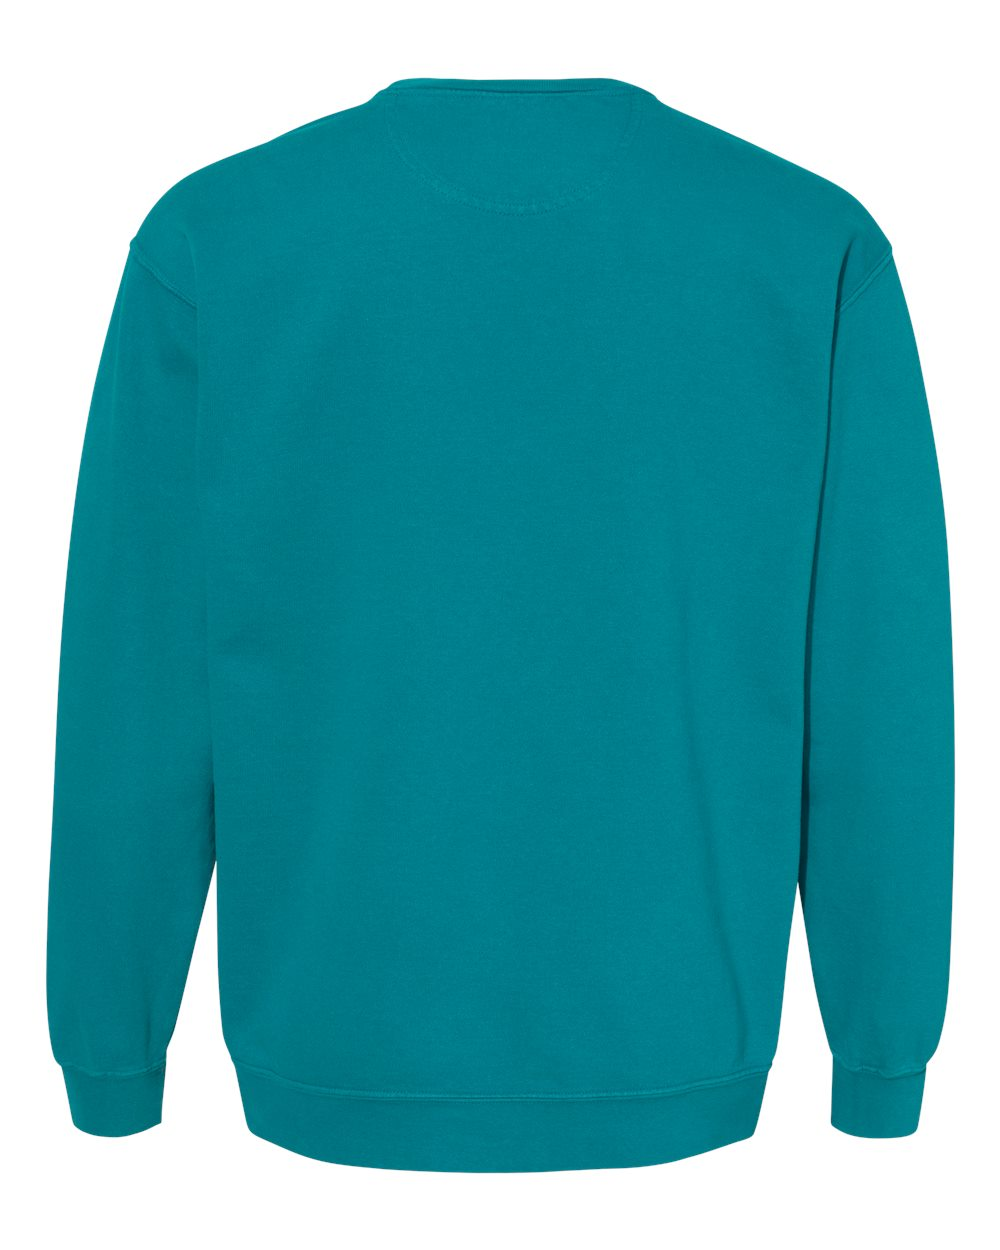 Comfort-Colors-Mens-Garment-Dyed-Ringspun-Crewneck-Sweatshirt-1566-up-to-3XL miniature 58